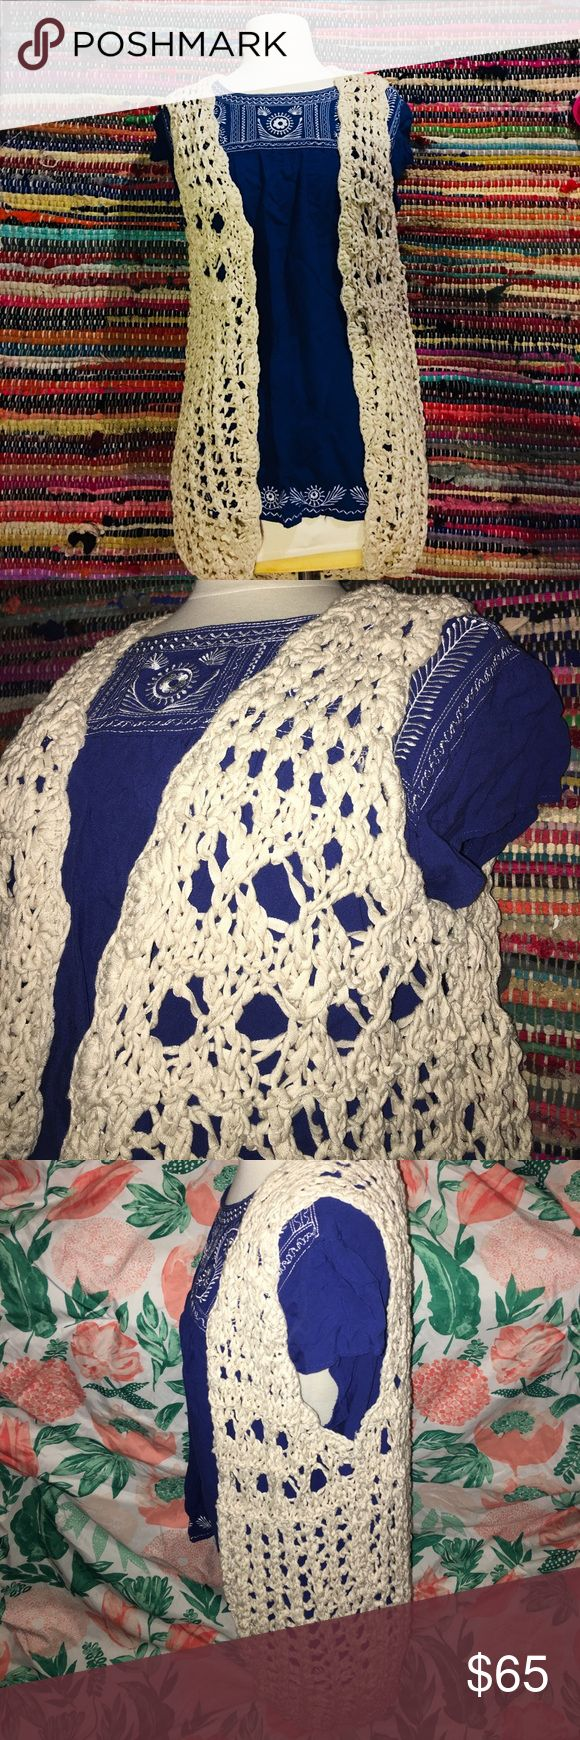 Lucky Brand knitted sleeveless sweater vest Pre-owned Lucky Brand knitted sleeveless sweater vest. In great condition. Beautiful knitted pattern great with a pair of jeans, shorts or skirts. Lucky Brand Sweaters Cardigans